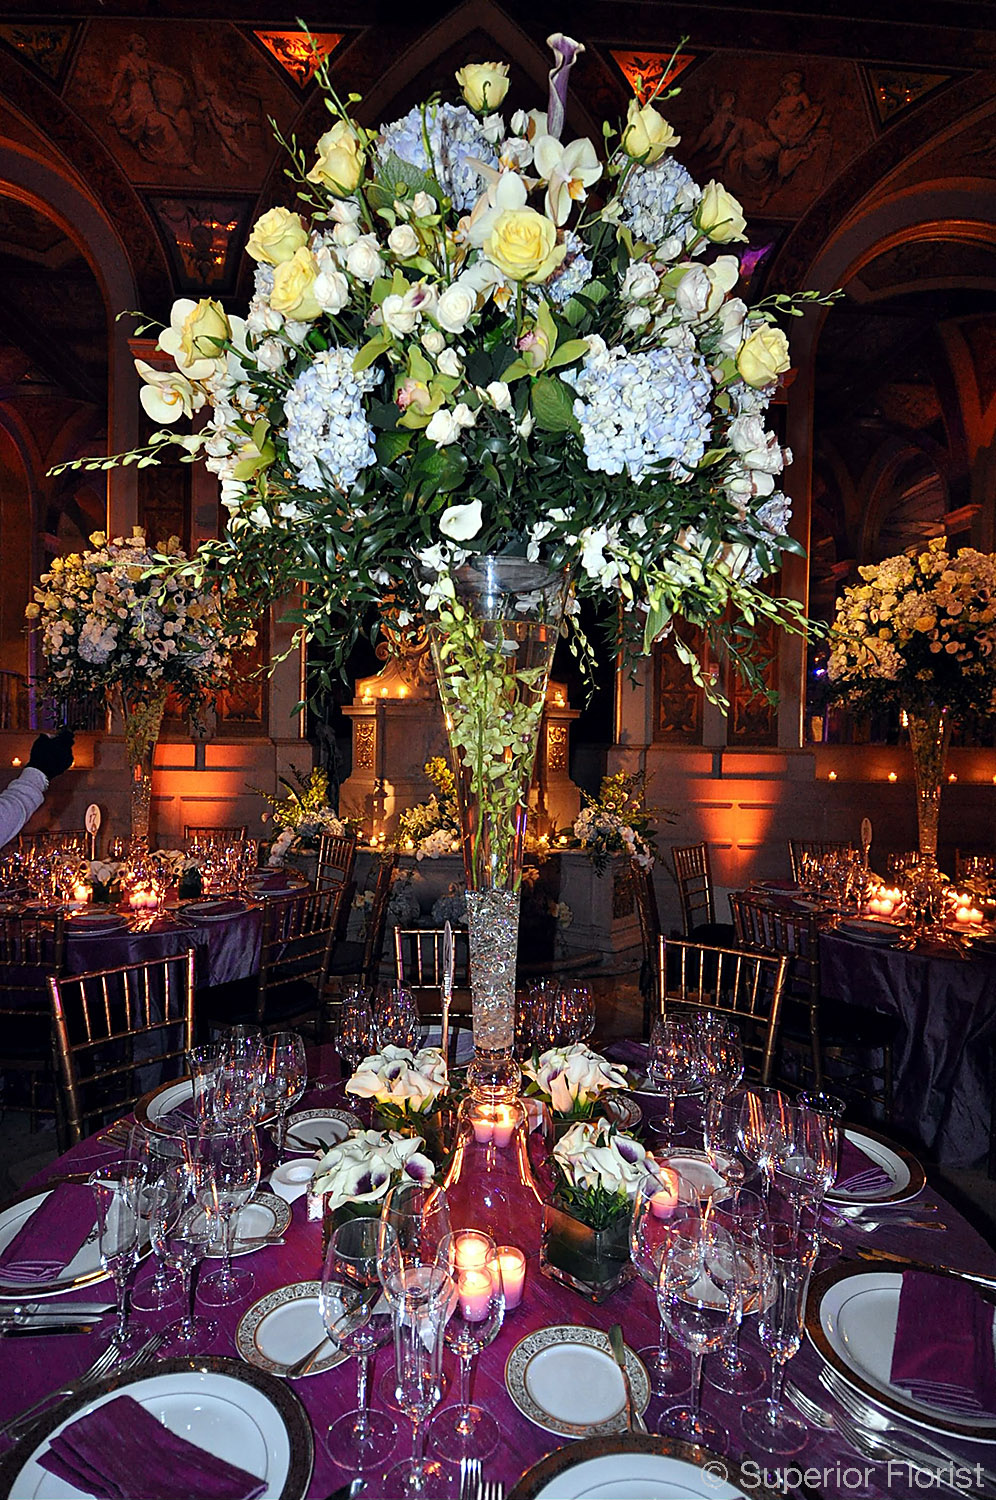 Superior florist event florals superior florist centerpieces an extravagant dinner table centerpiece atop a forty inch tall junglespirit Choice Image